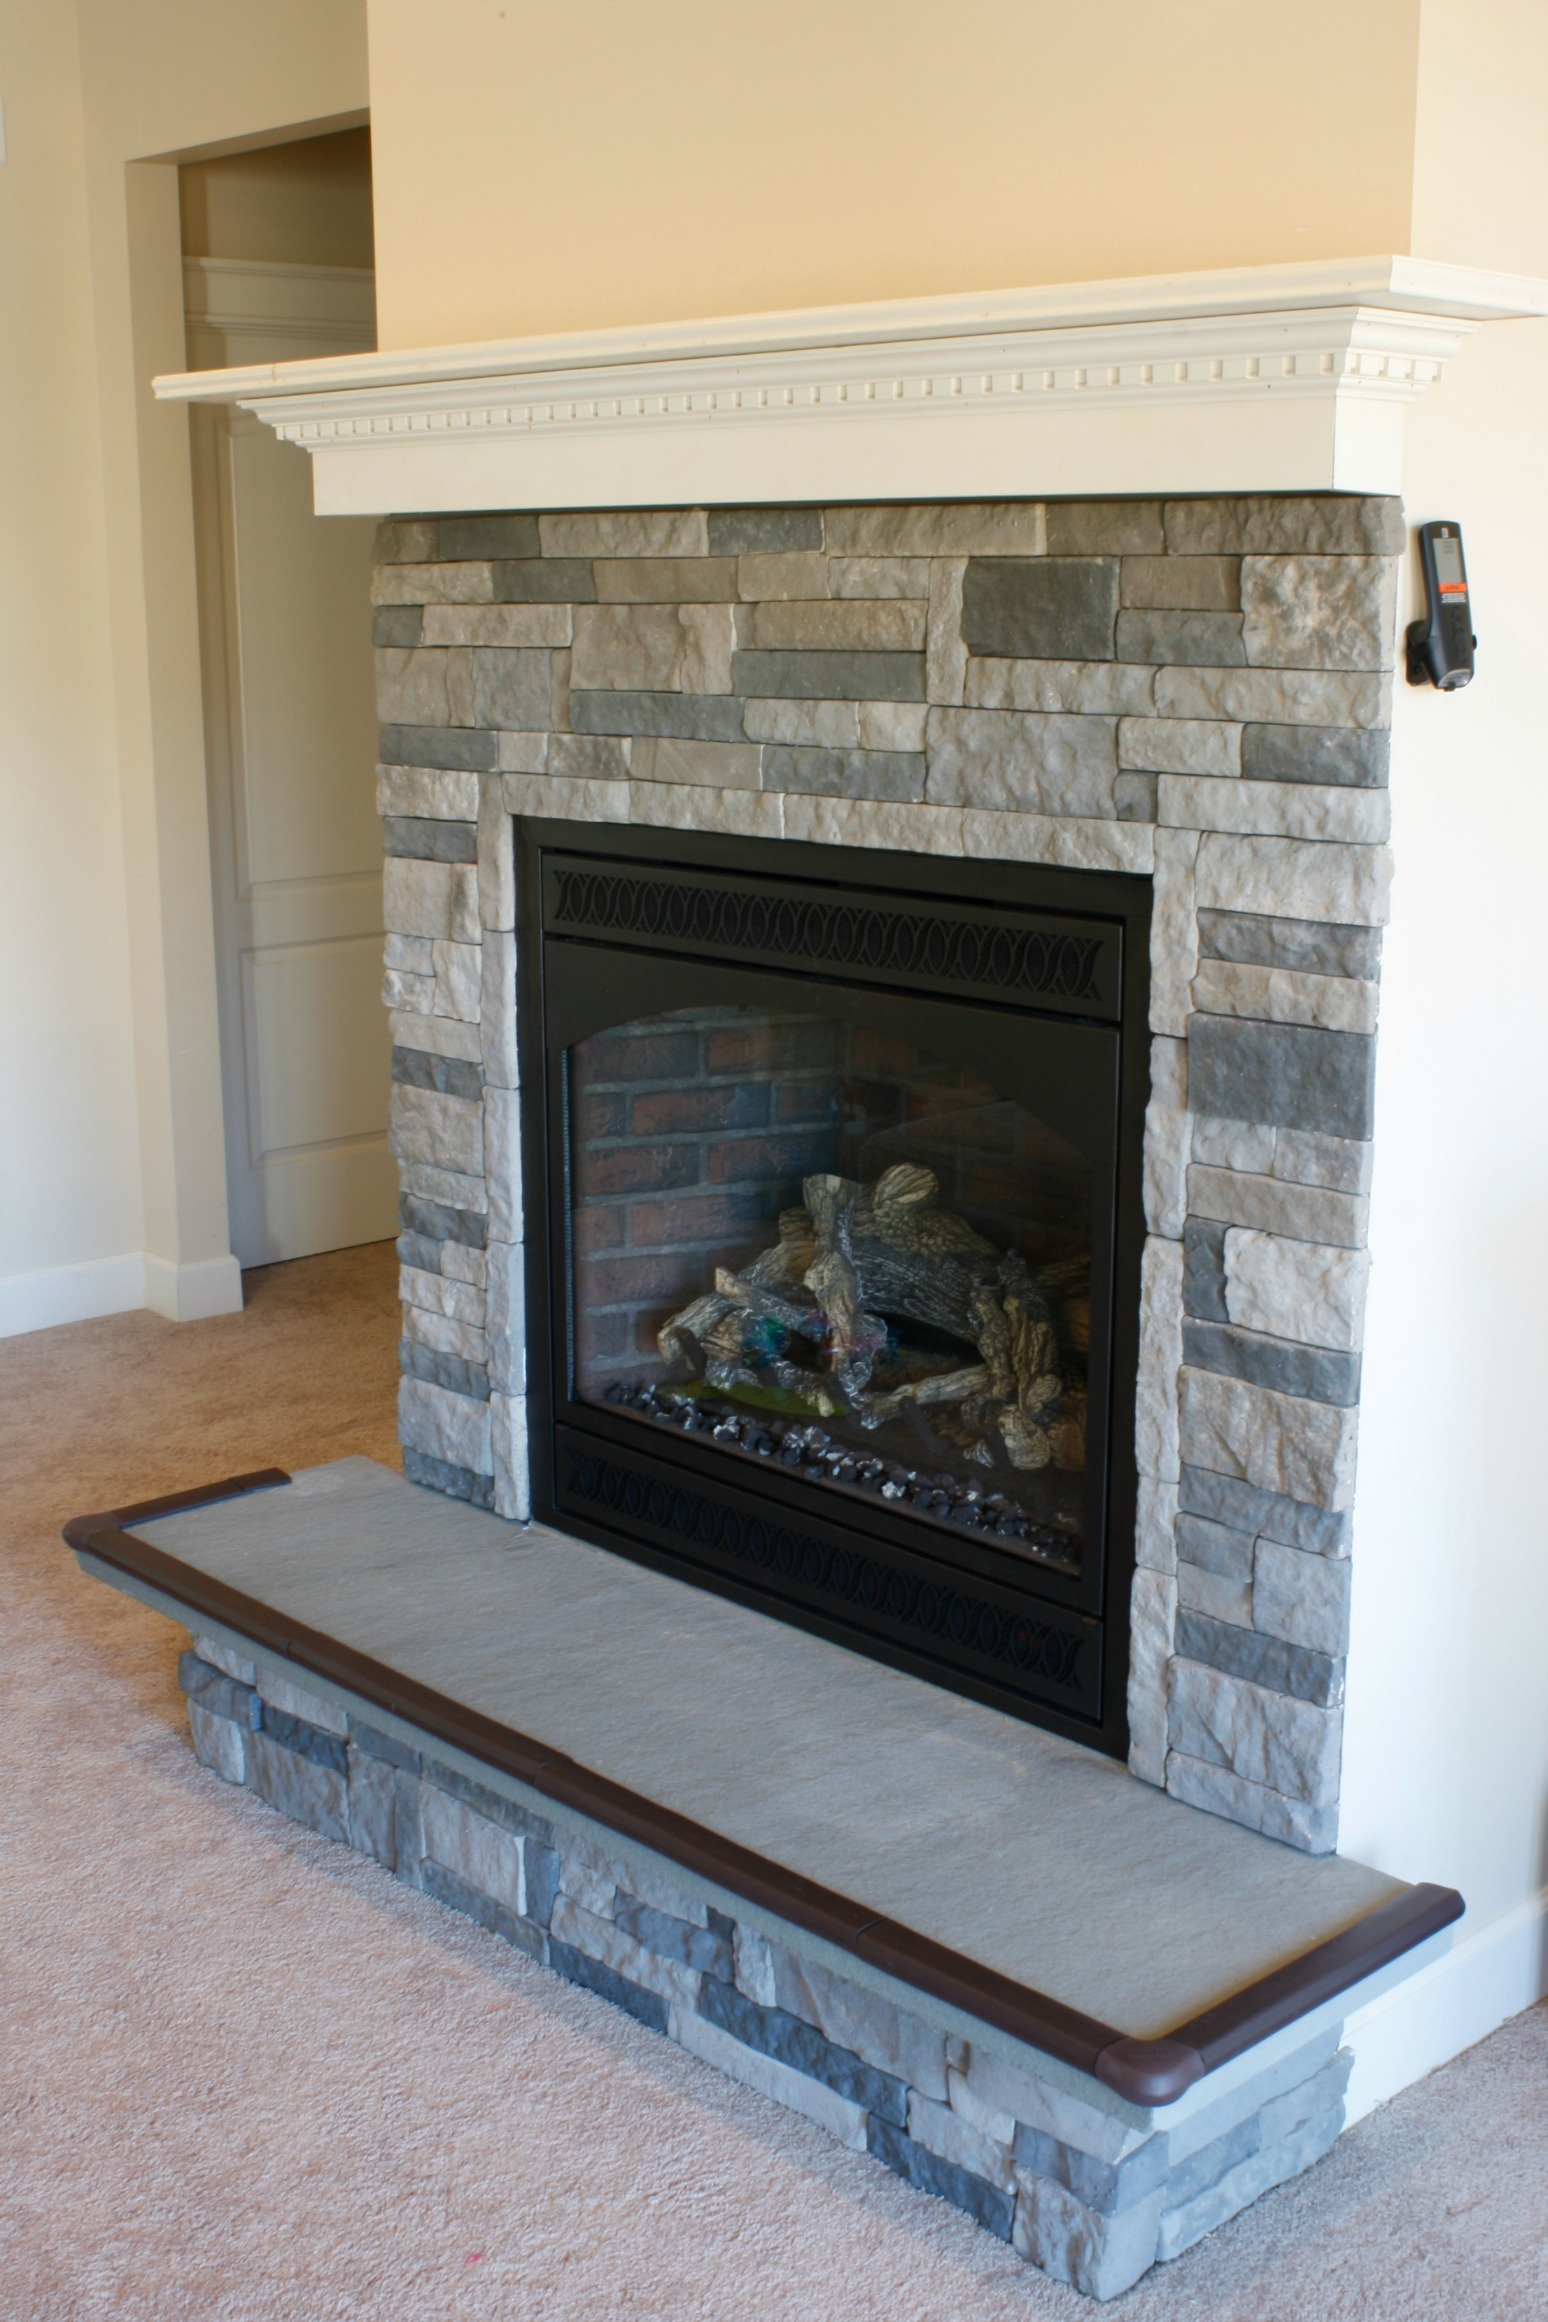 http://binkiesandbriefcases.com/build-floating-fireplace-mantle/